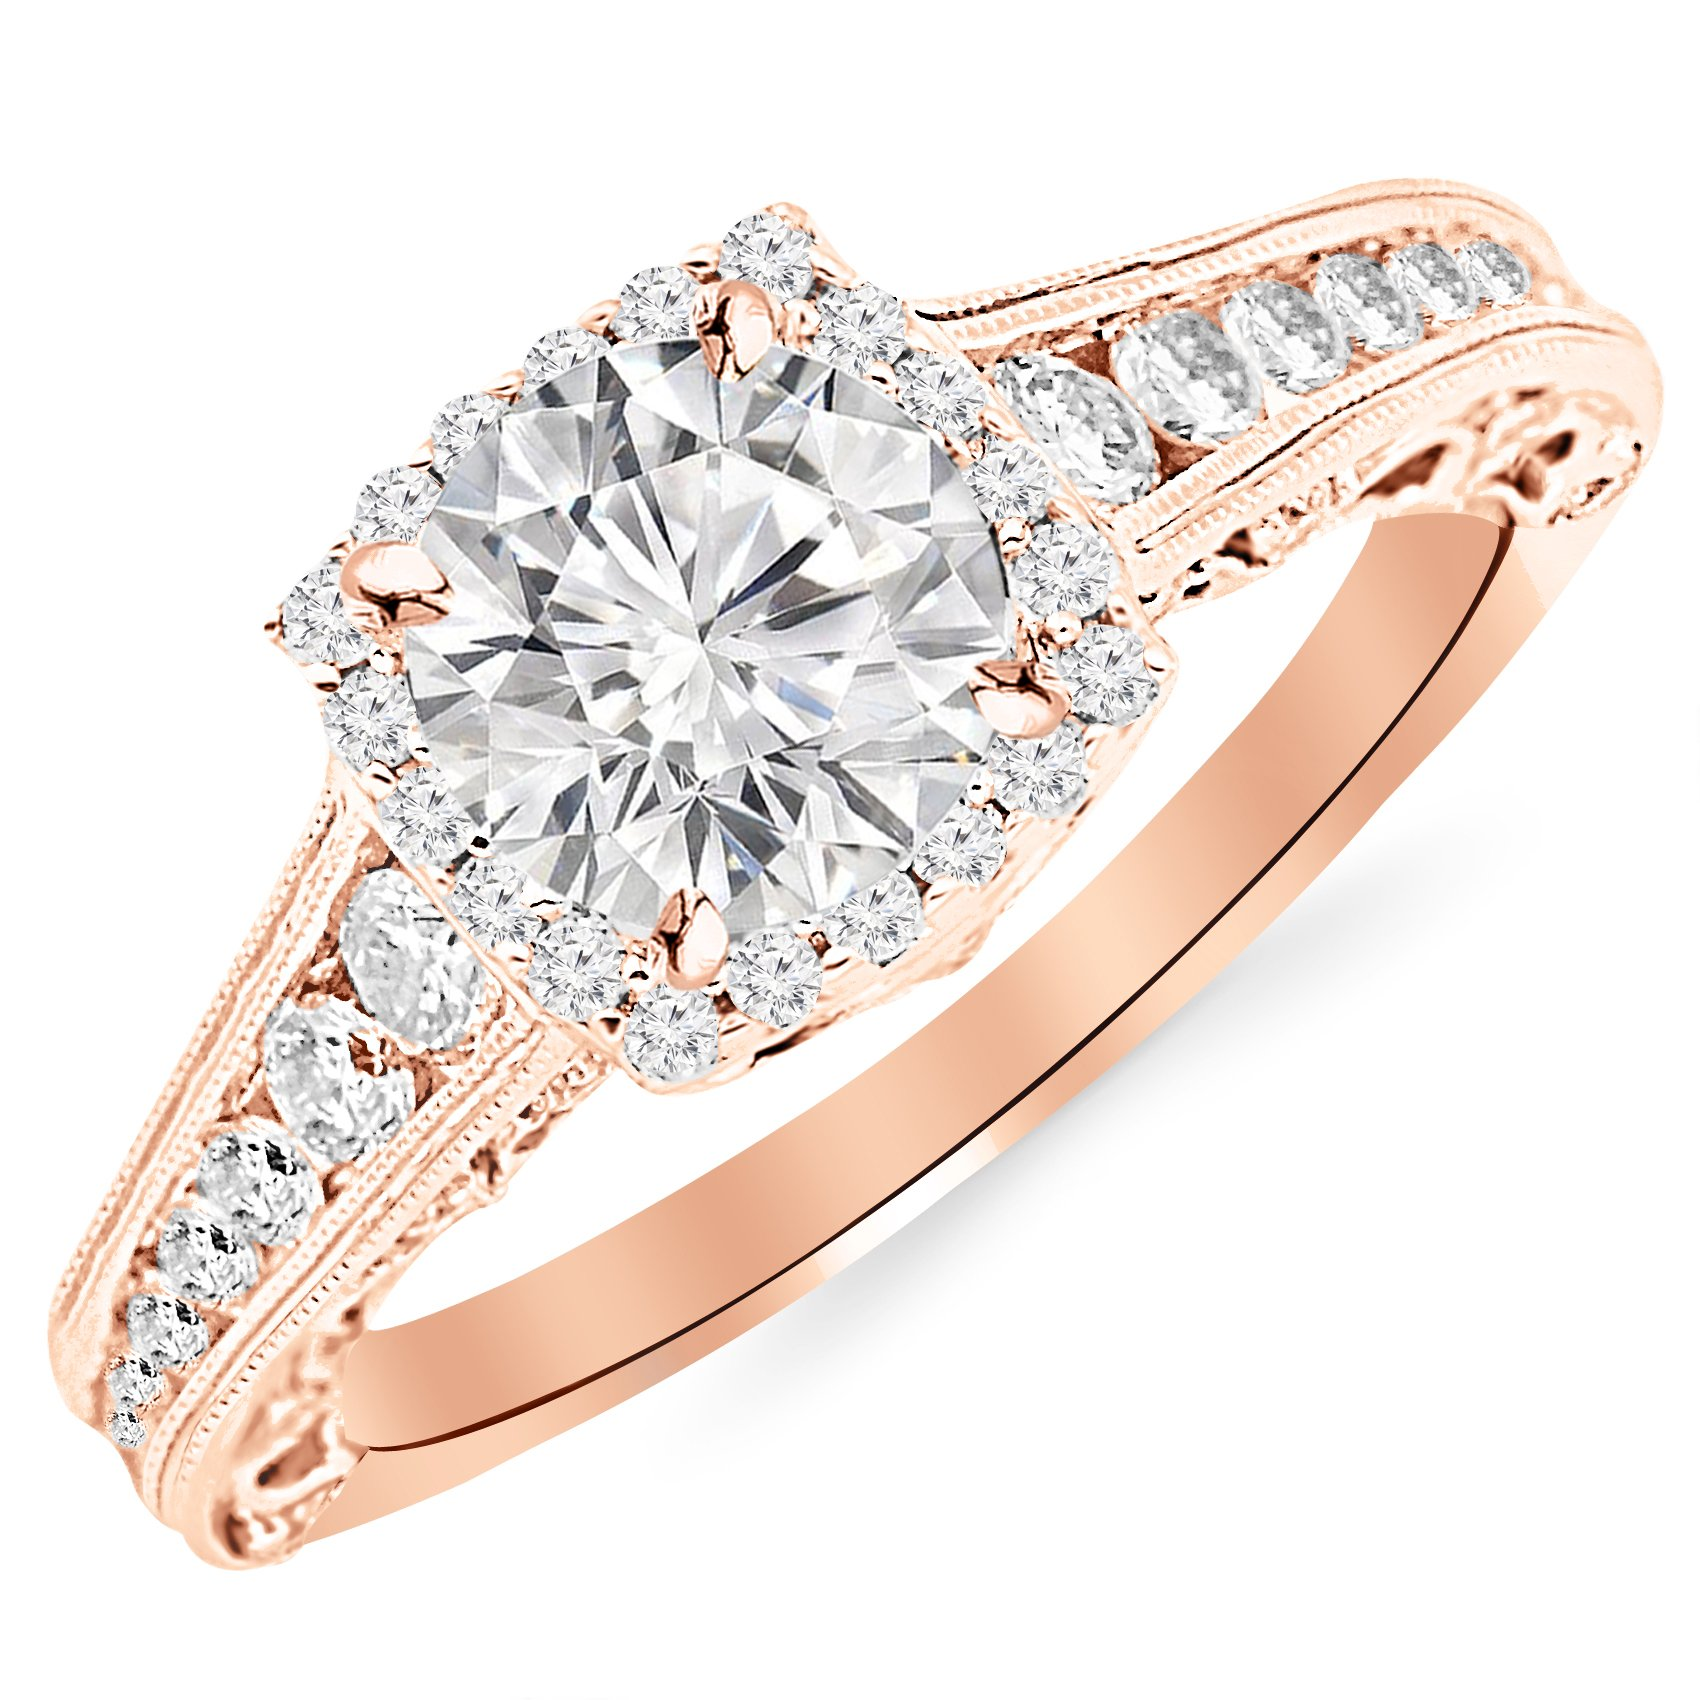 2.75 Carat 14K Rose Gold Vintage Halo Style Channel Set Round Brilliant Diamond Engagement Ring Milgrain with a 2 Carat Moissanite Center